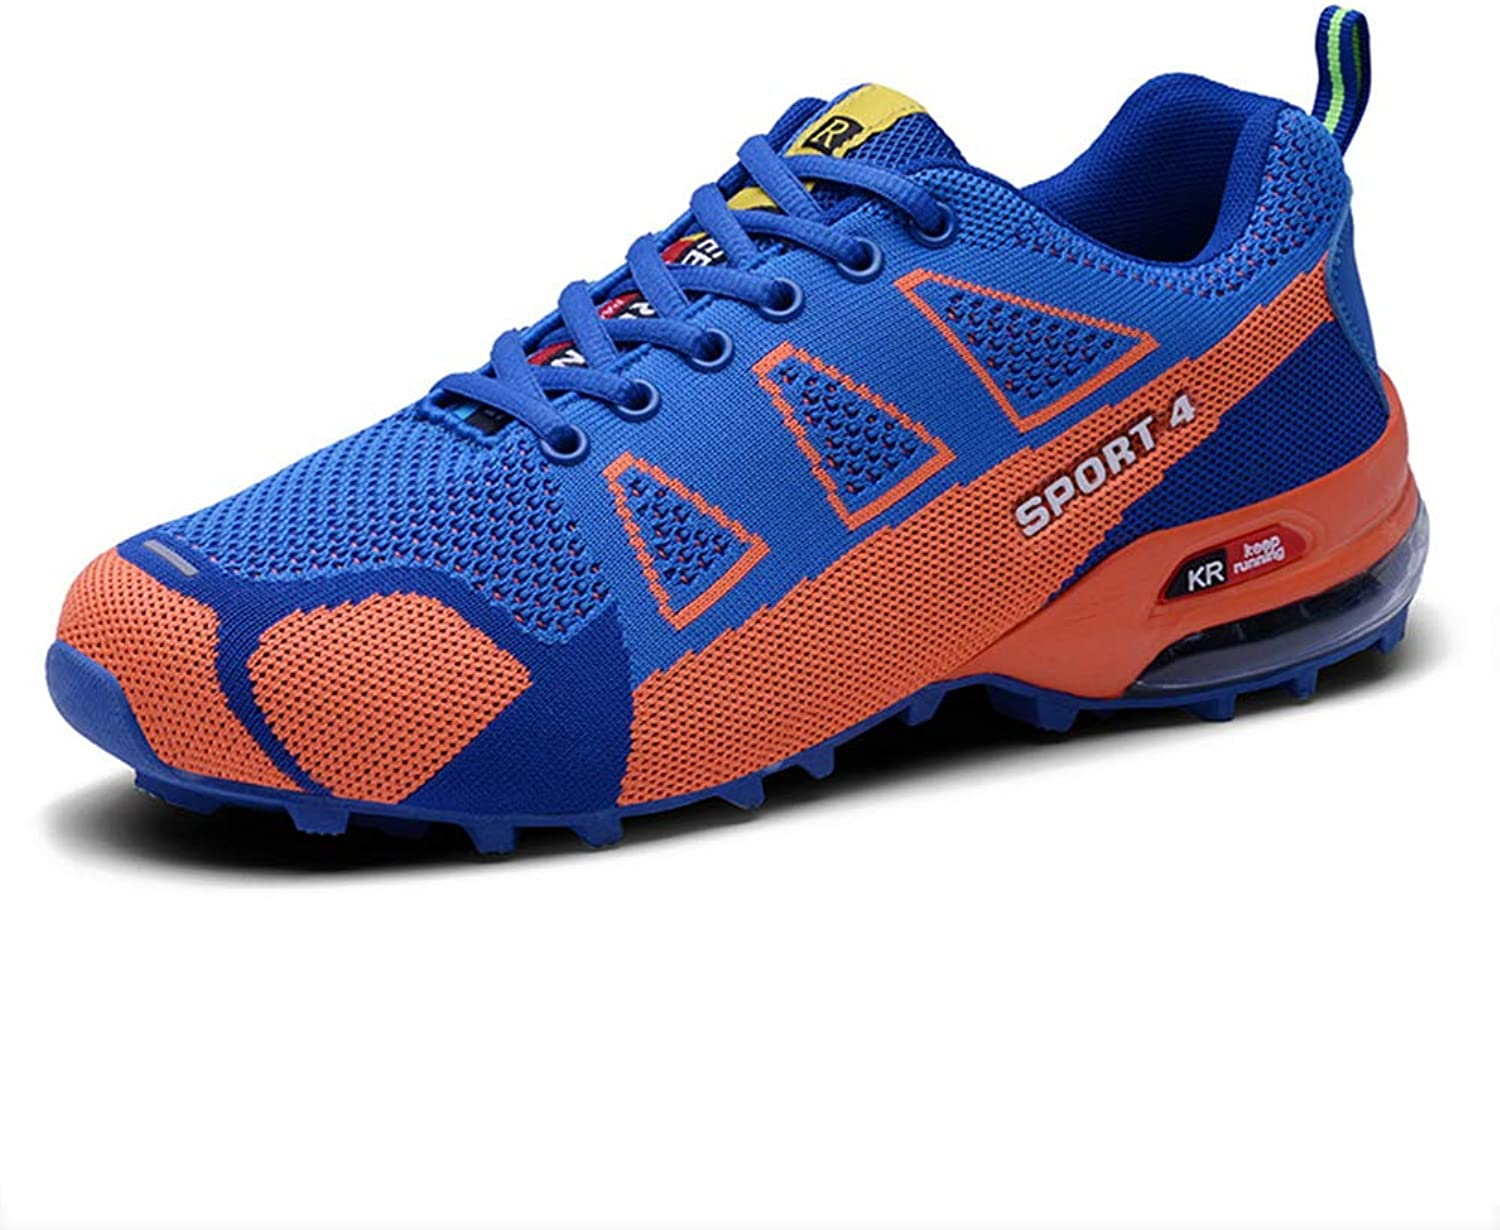 SELCNG Hiking shoes Non-Slip Ultra Light Outdoor Walking shoes Breathable Sports Climbing shoes-bluee-42